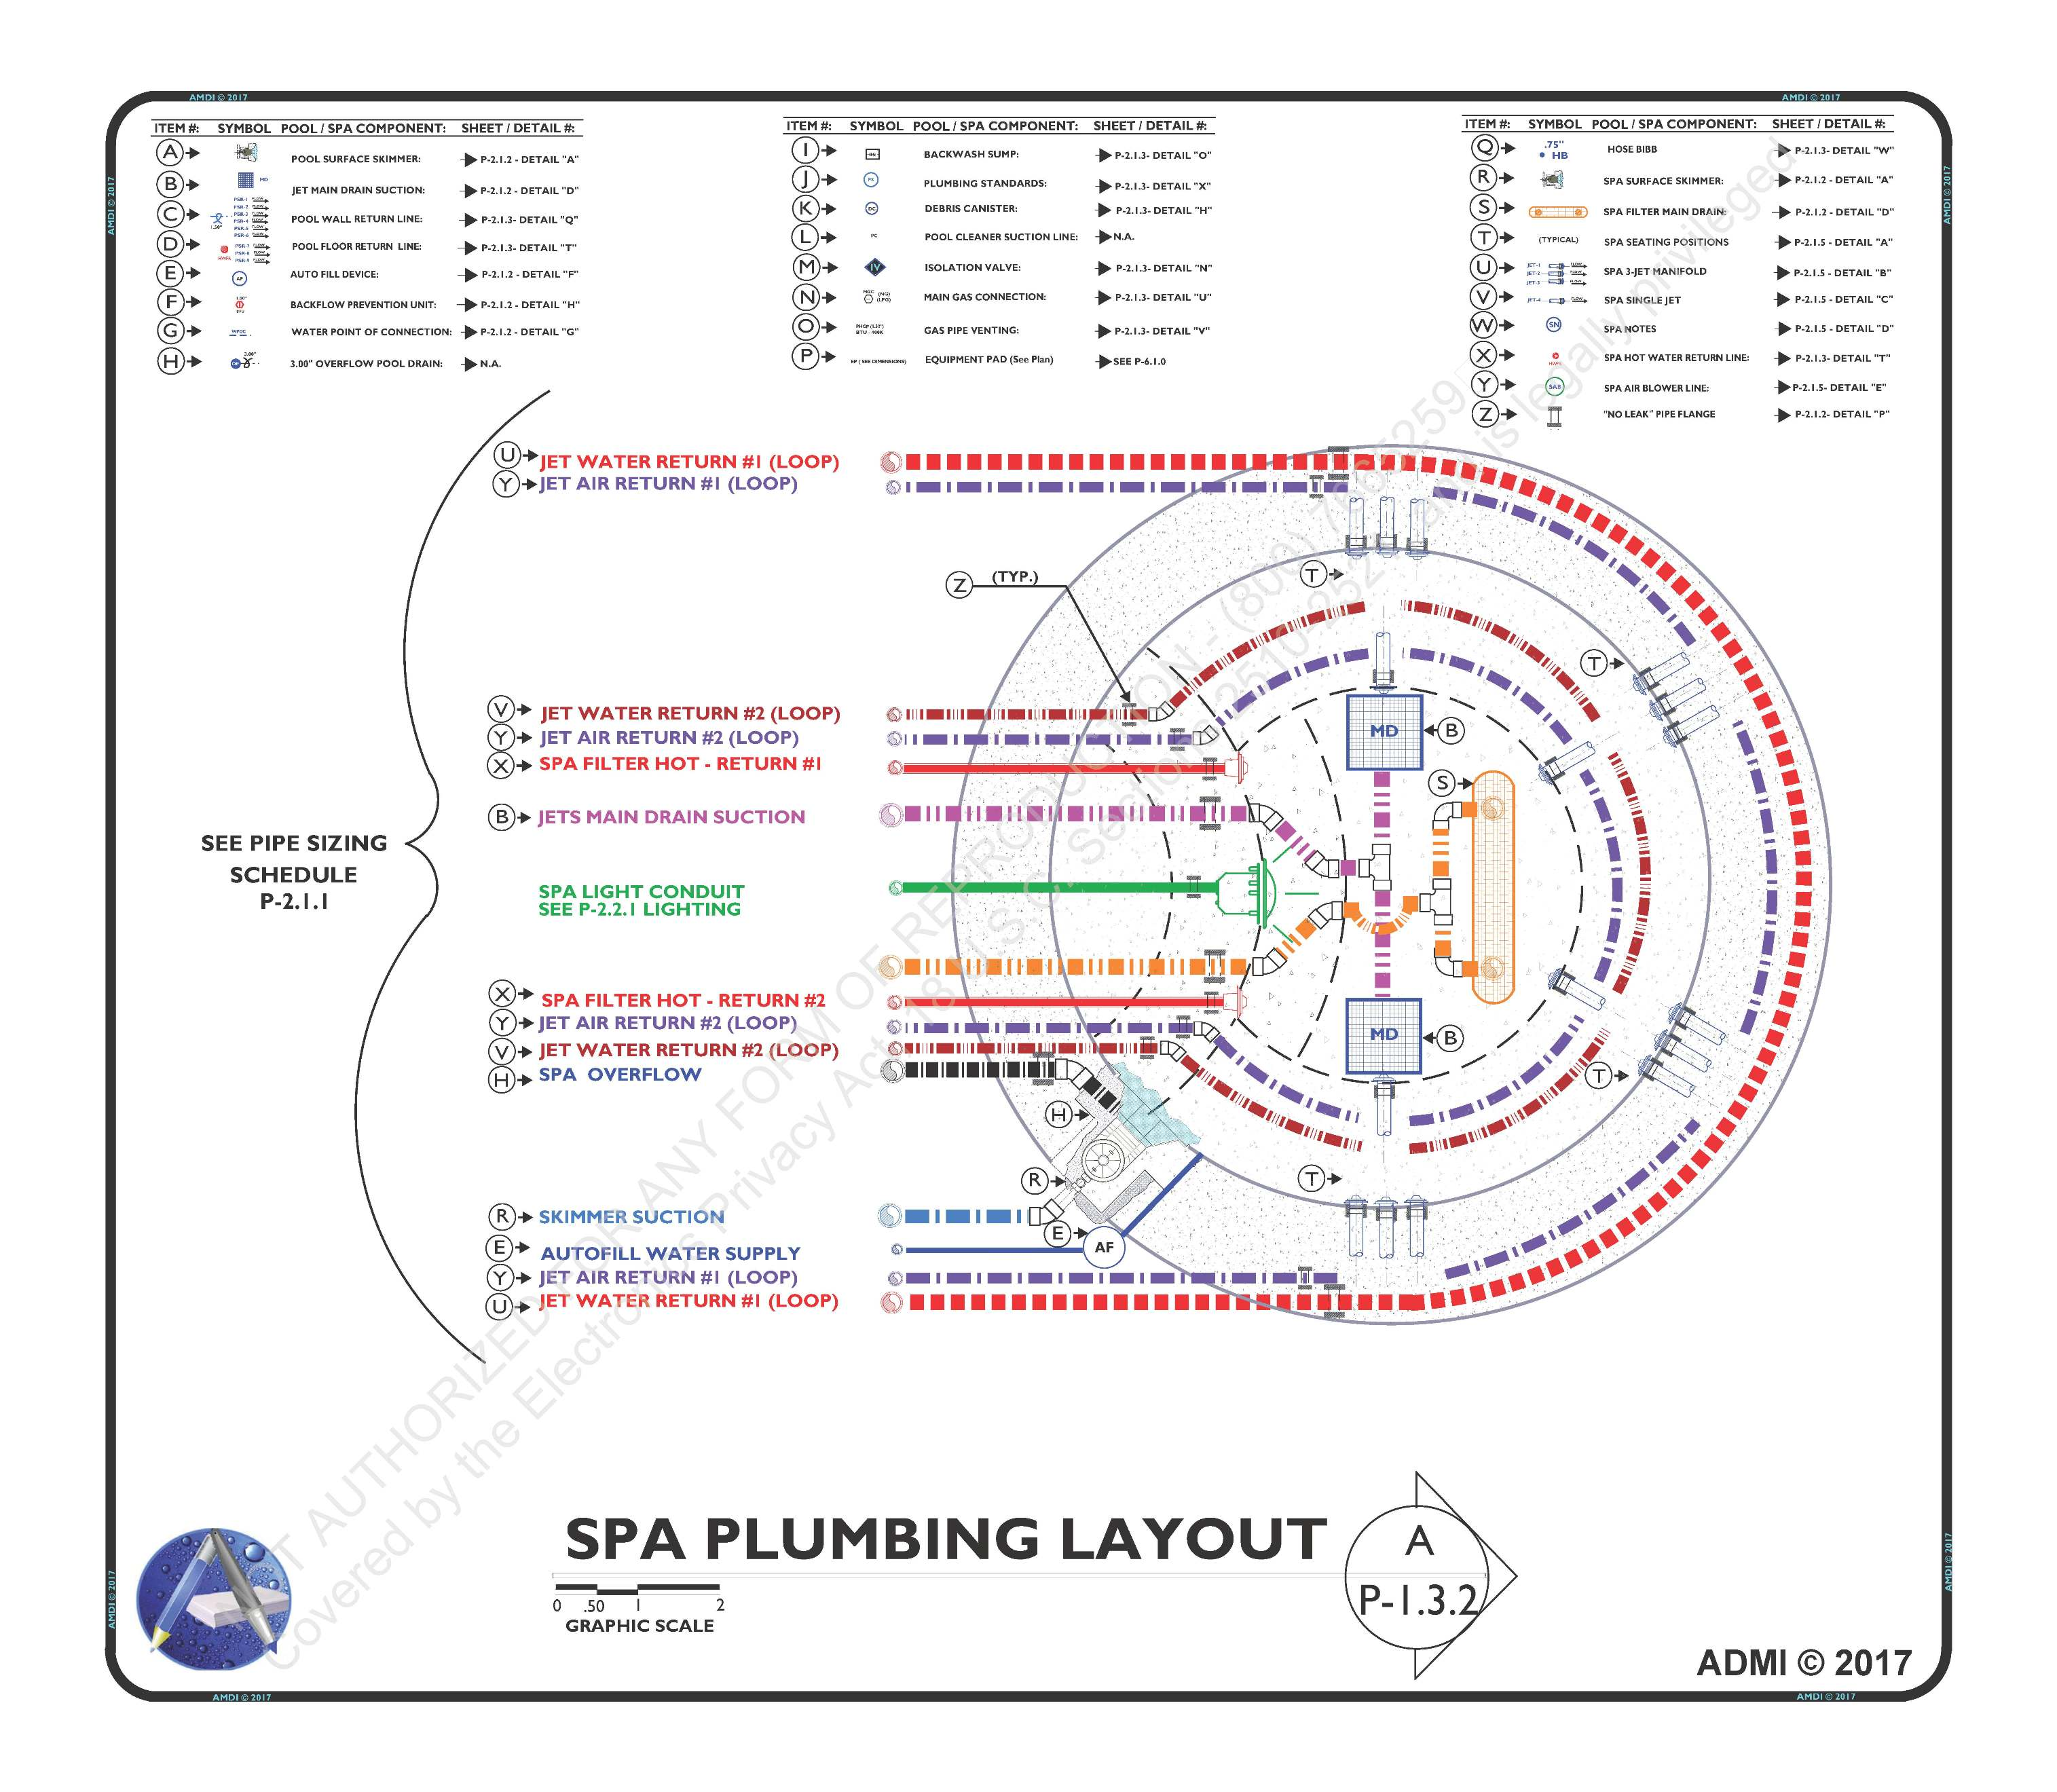 SPA PLUMBING LAYOUT